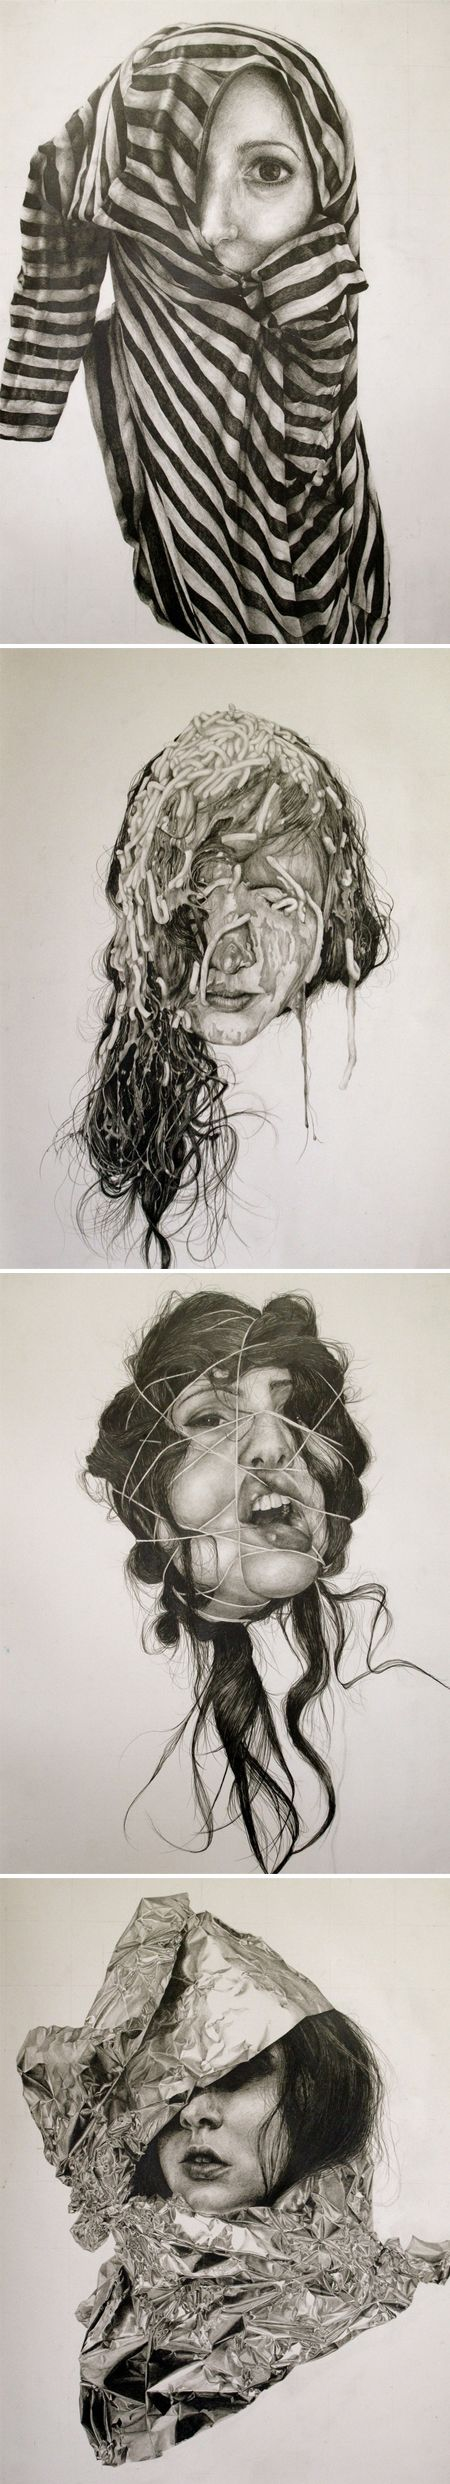 "Gillian Lambert Drawings from a series called ""Self Deception"" Graphite on 22"" x 30"" white paper"